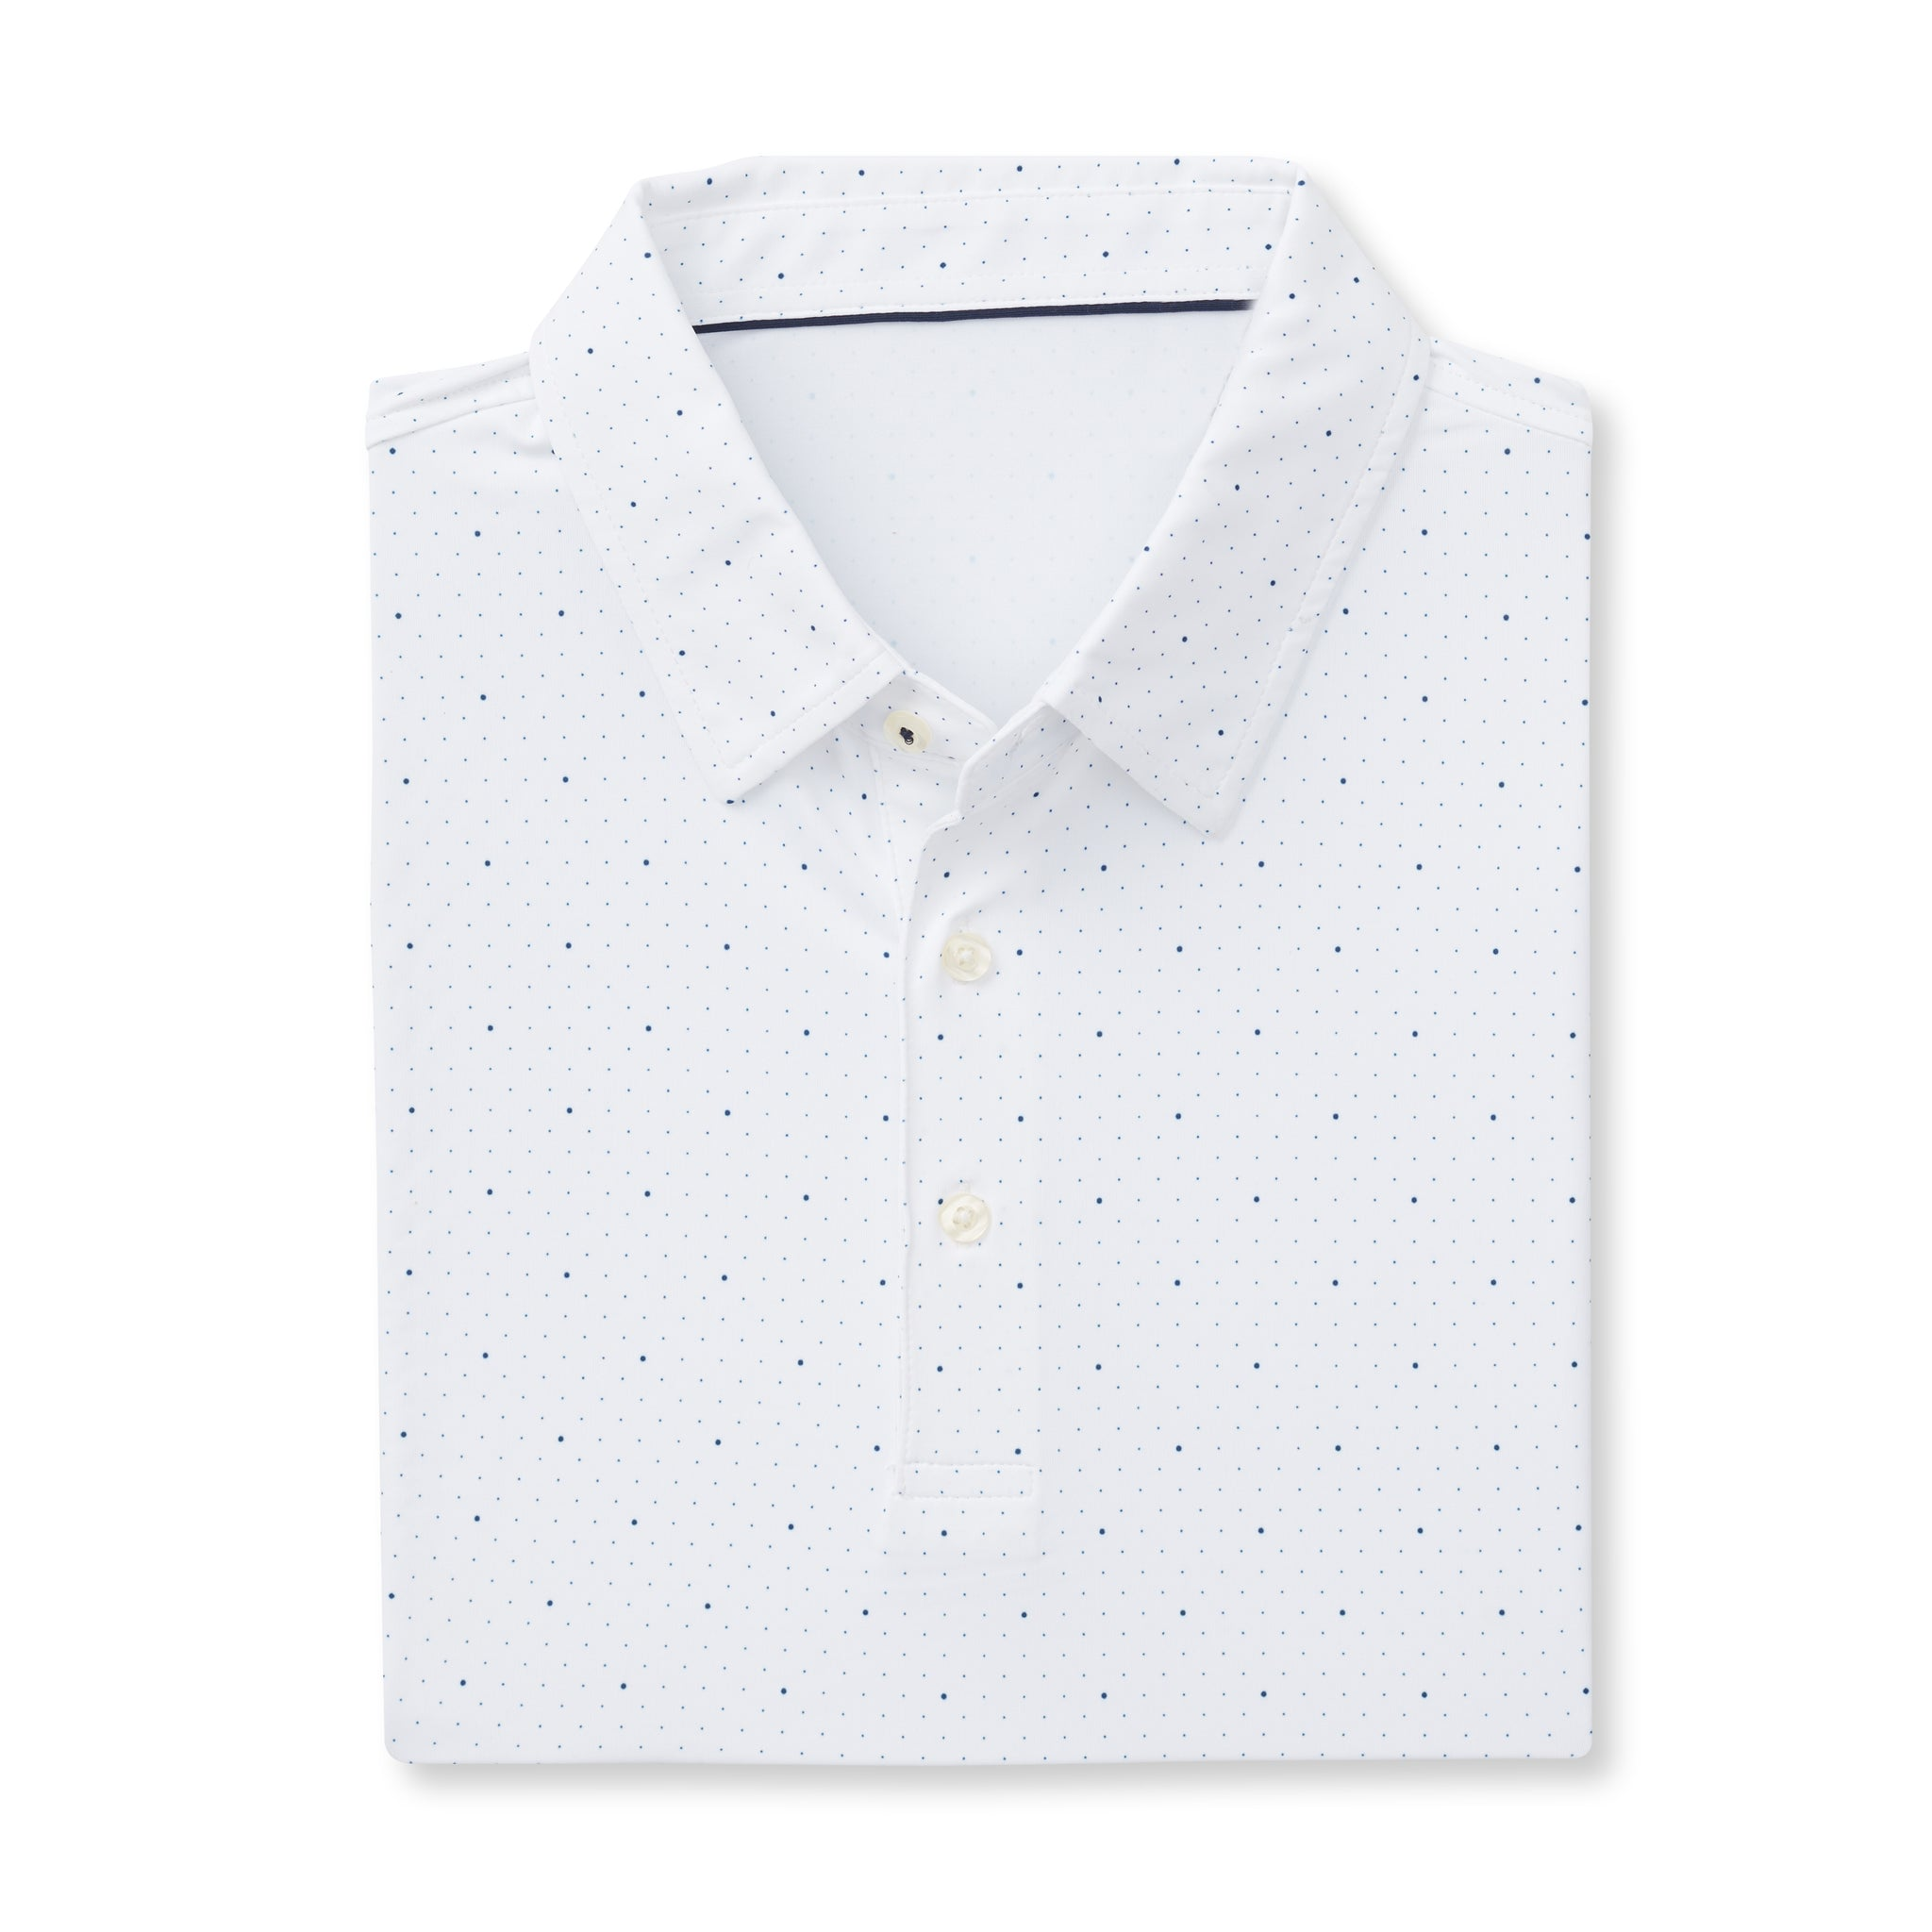 ECOTEC Short Sleeve Dual Dot Polo - White/Navy IS76803